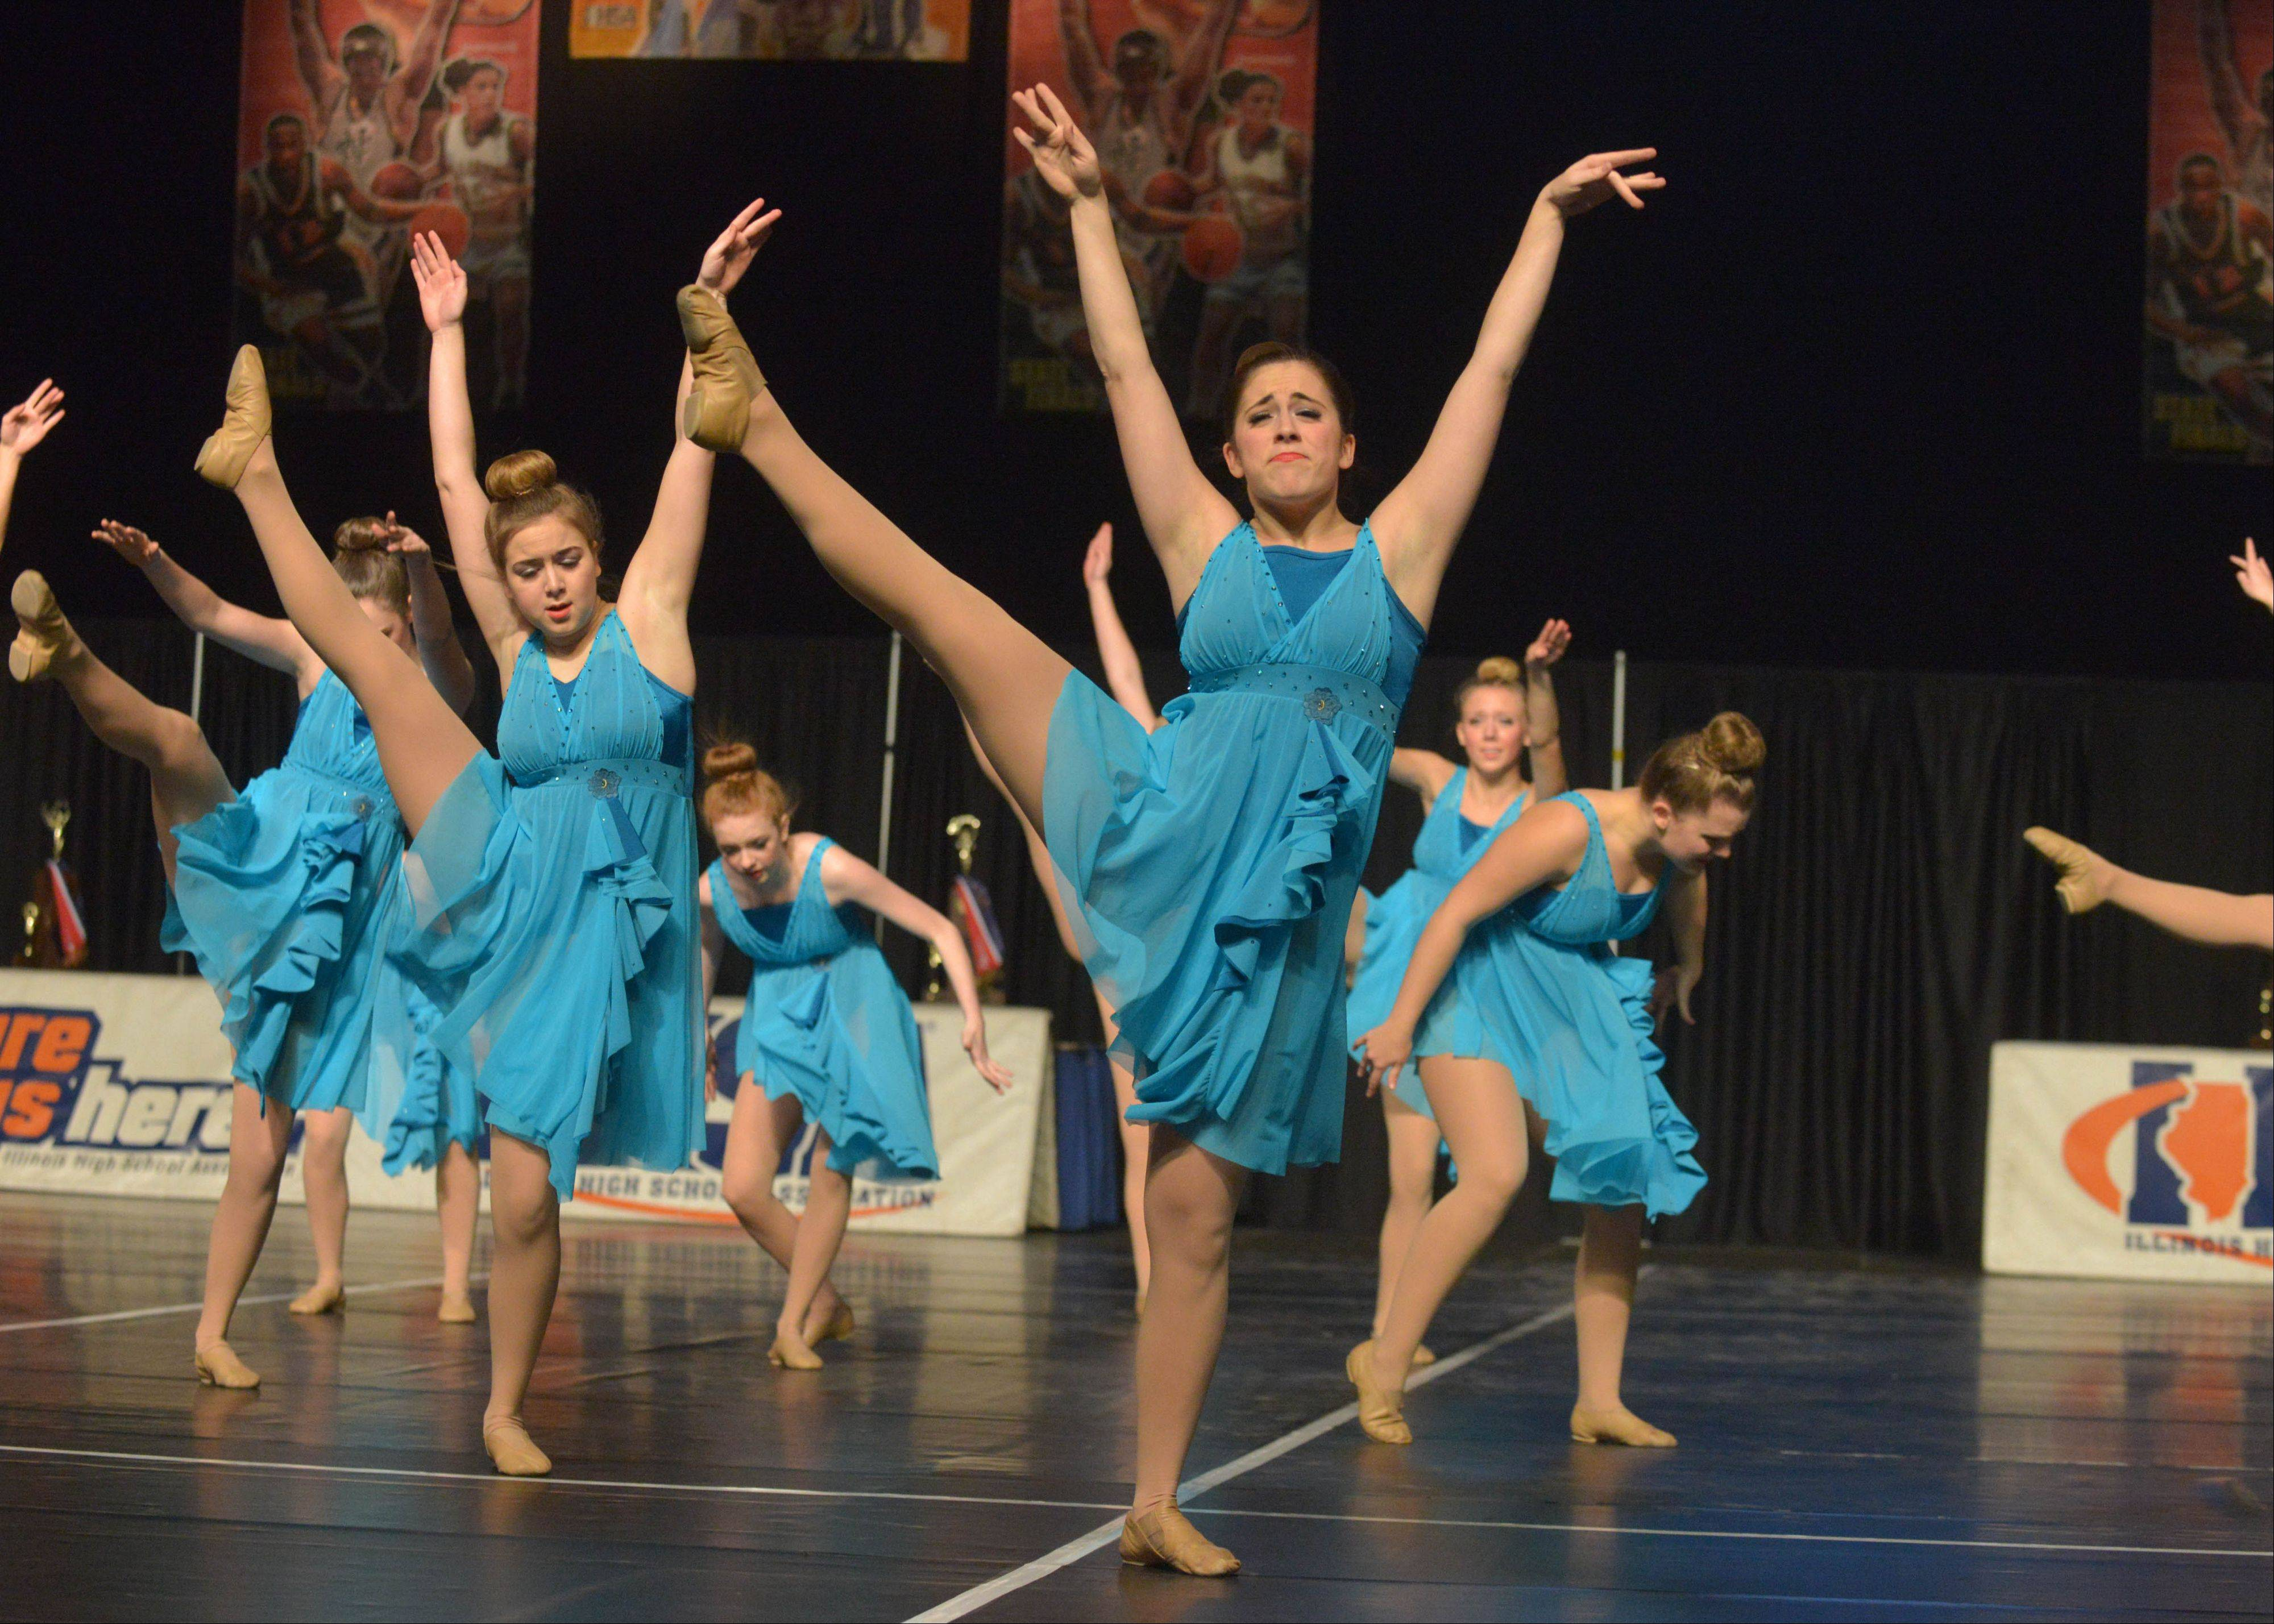 Stage is set for Saturday's state dance championships